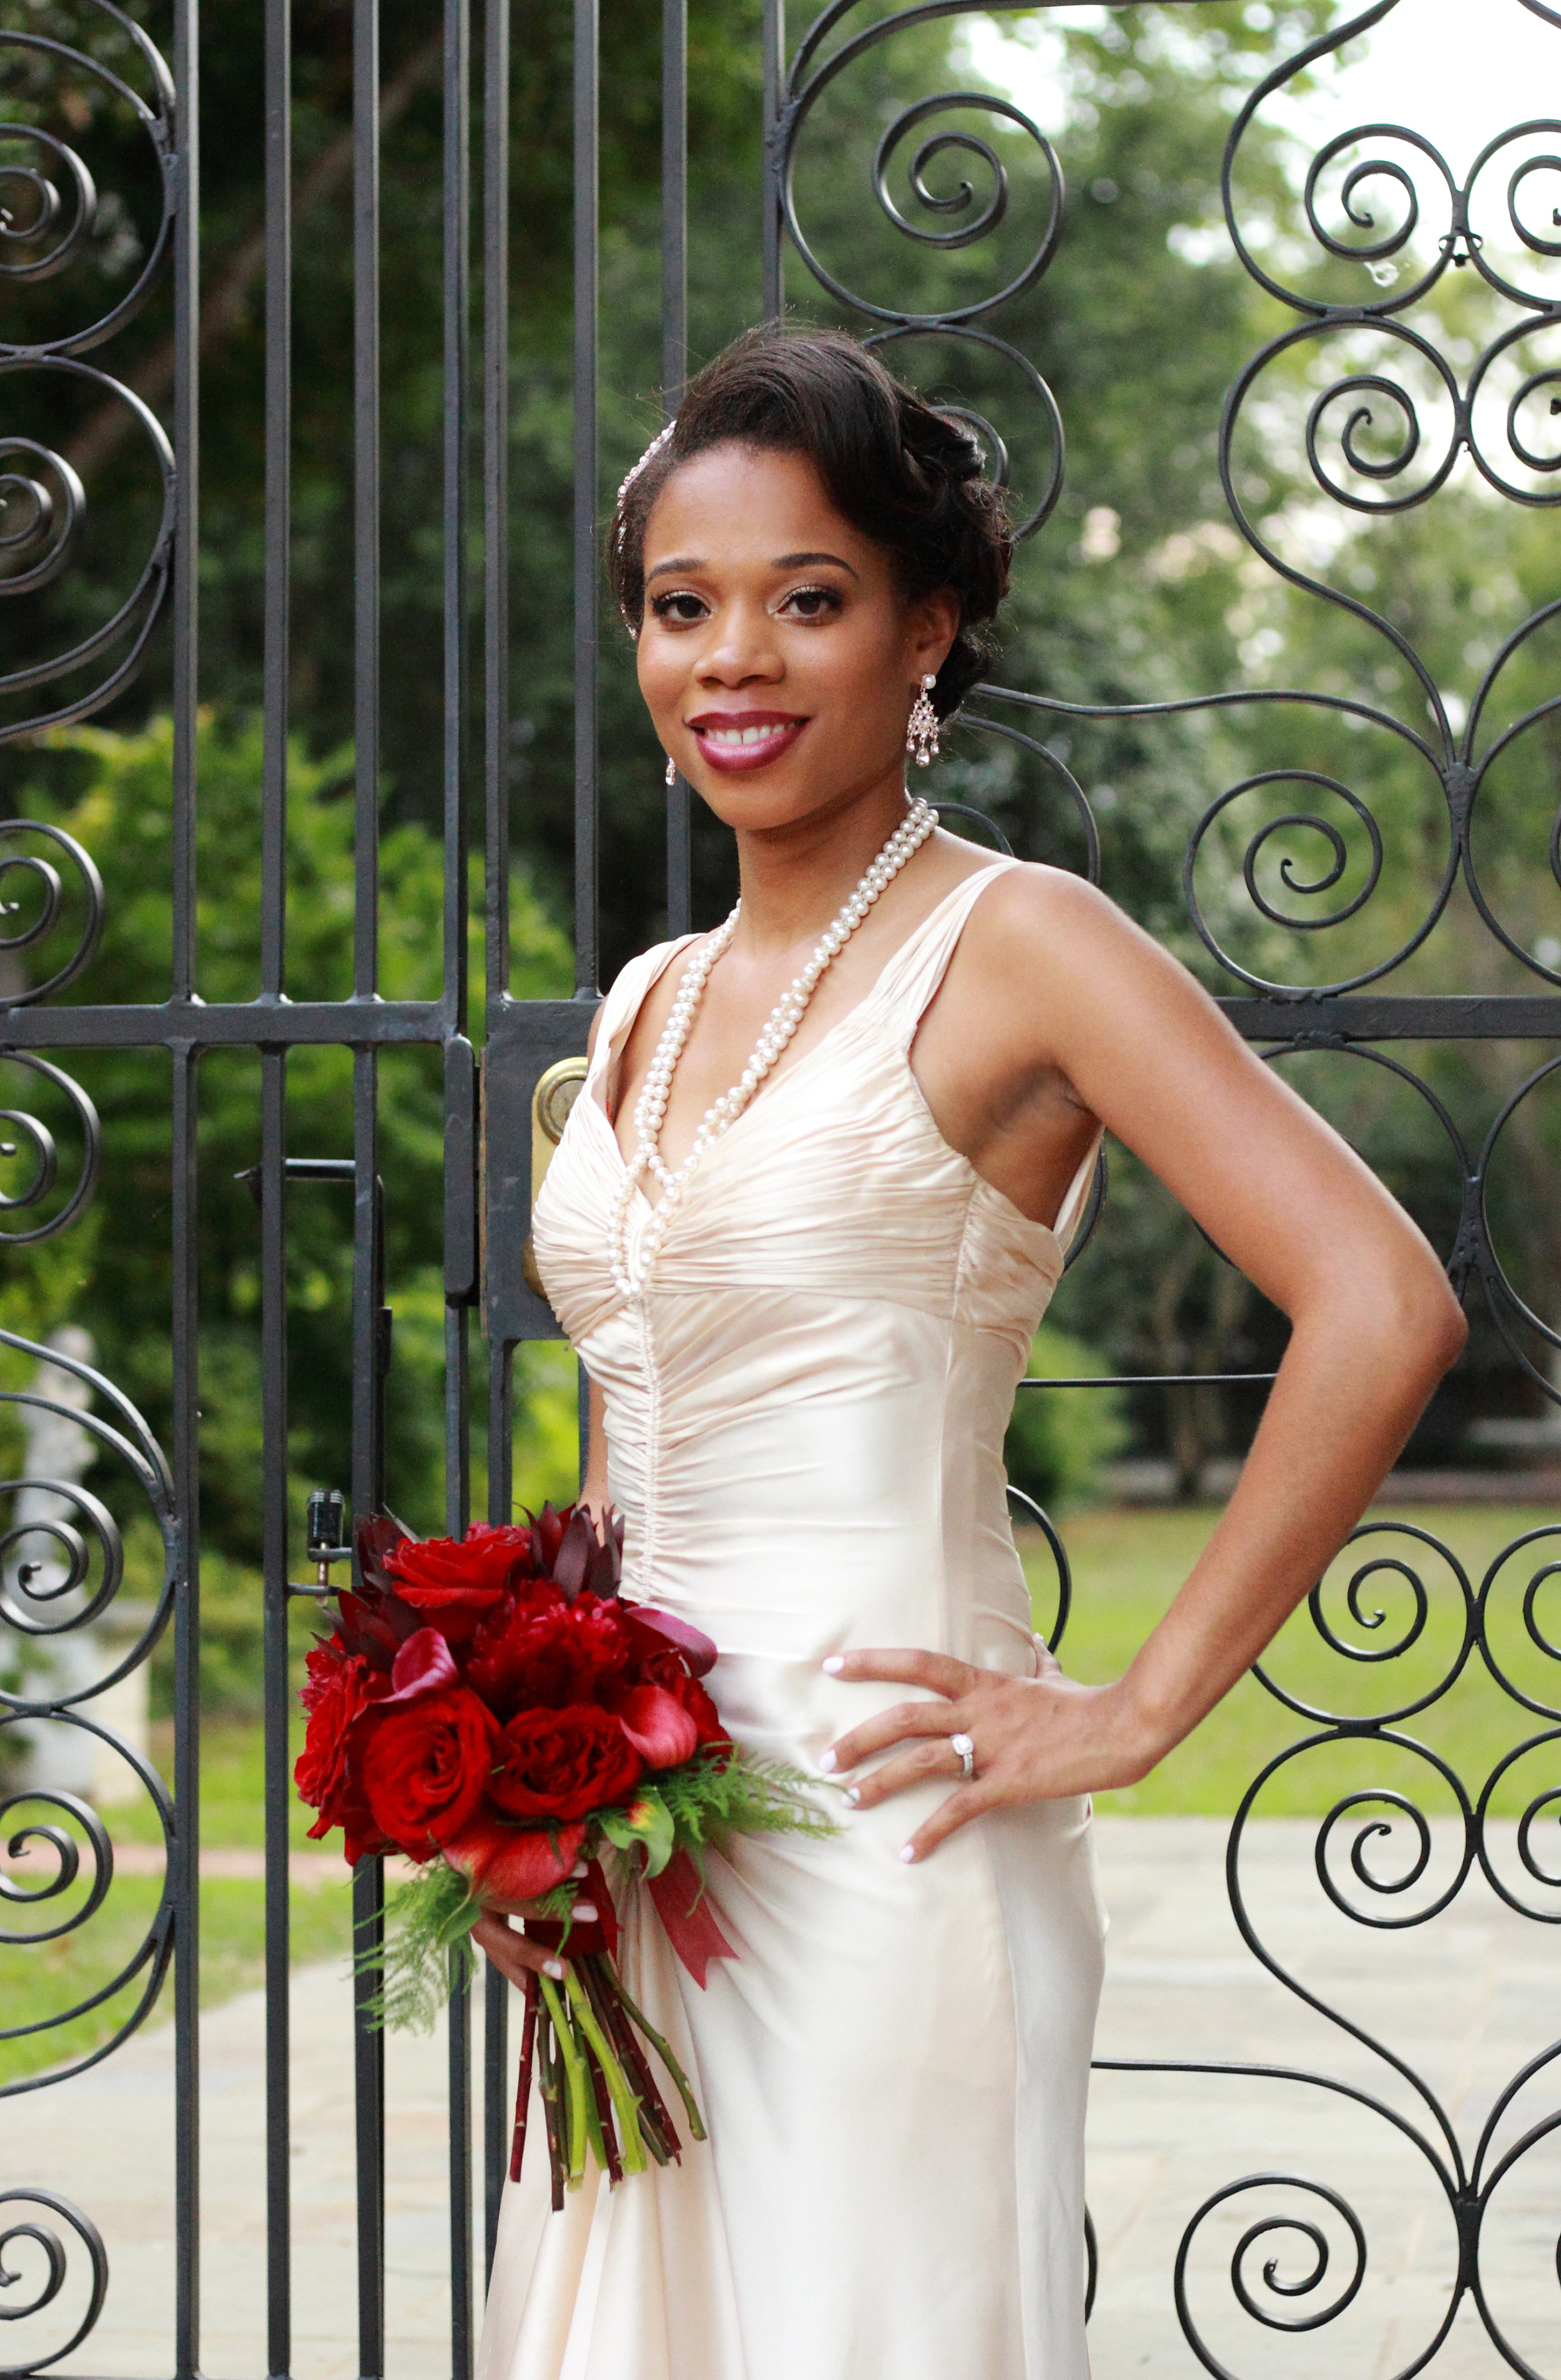 Burgundy and Navy Southern Renaissance Styled Shoot at the Lace House | Palmetto State Weddings